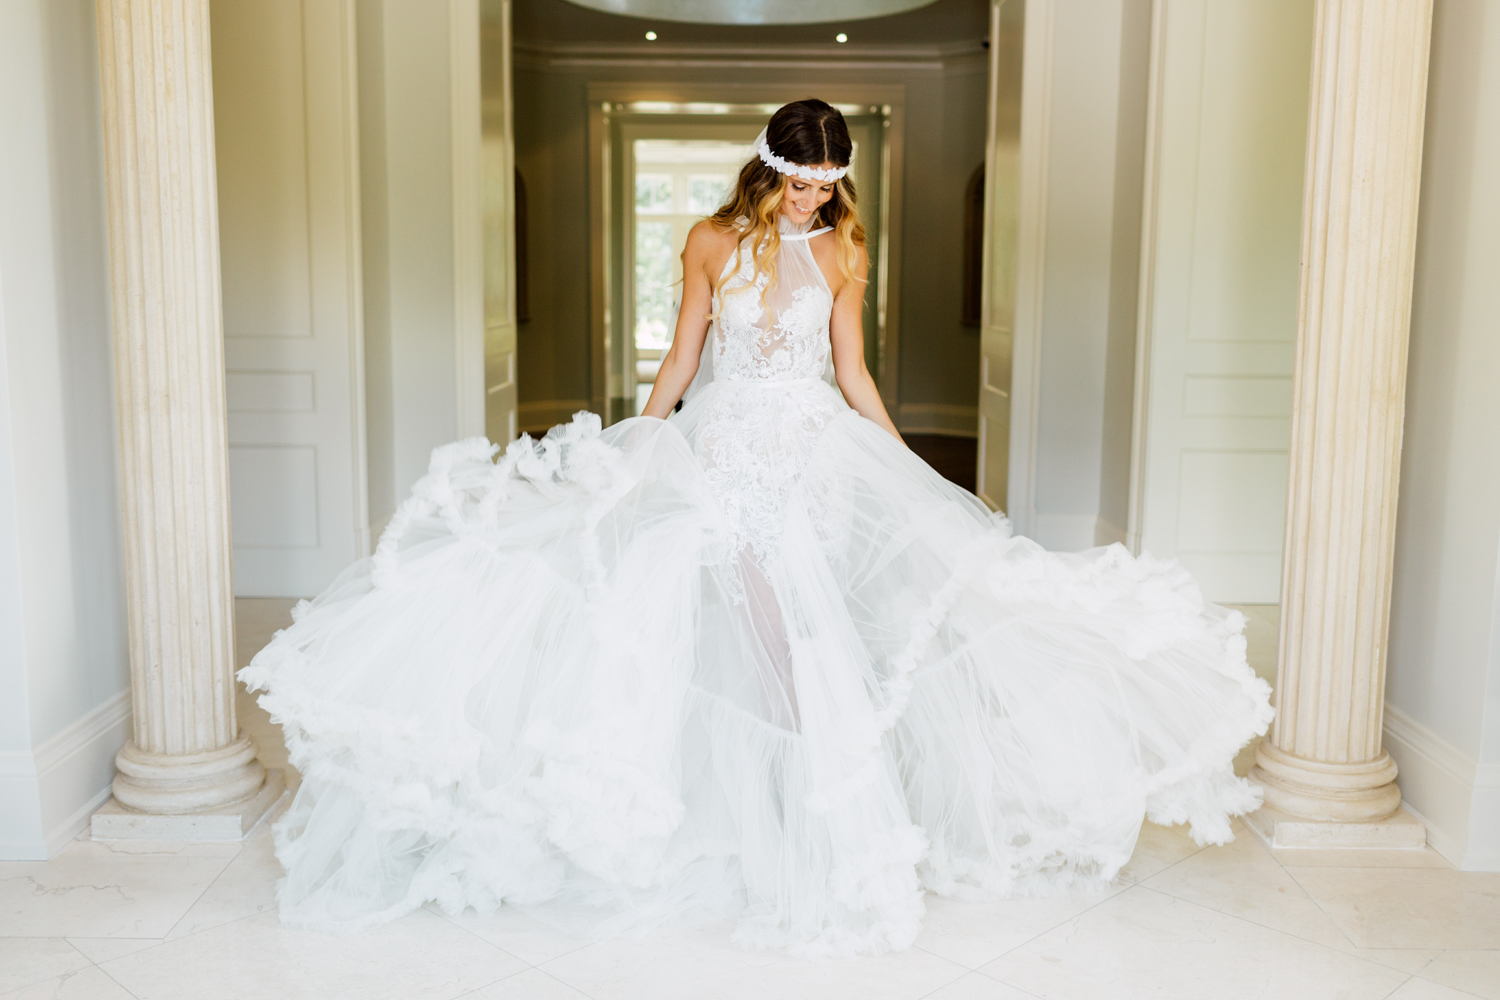 tal kahlon wedding gown